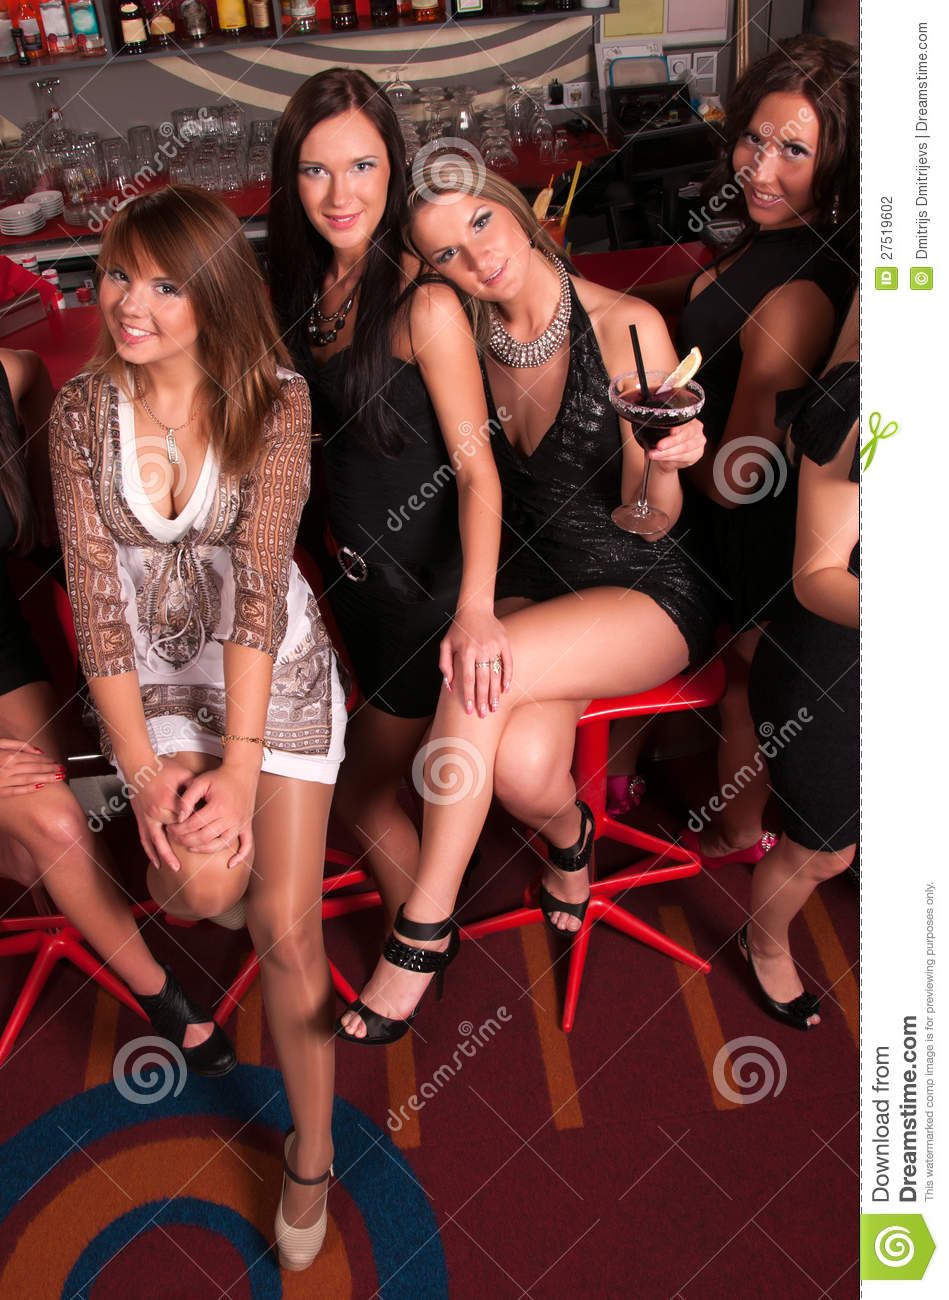 Orgy in the club